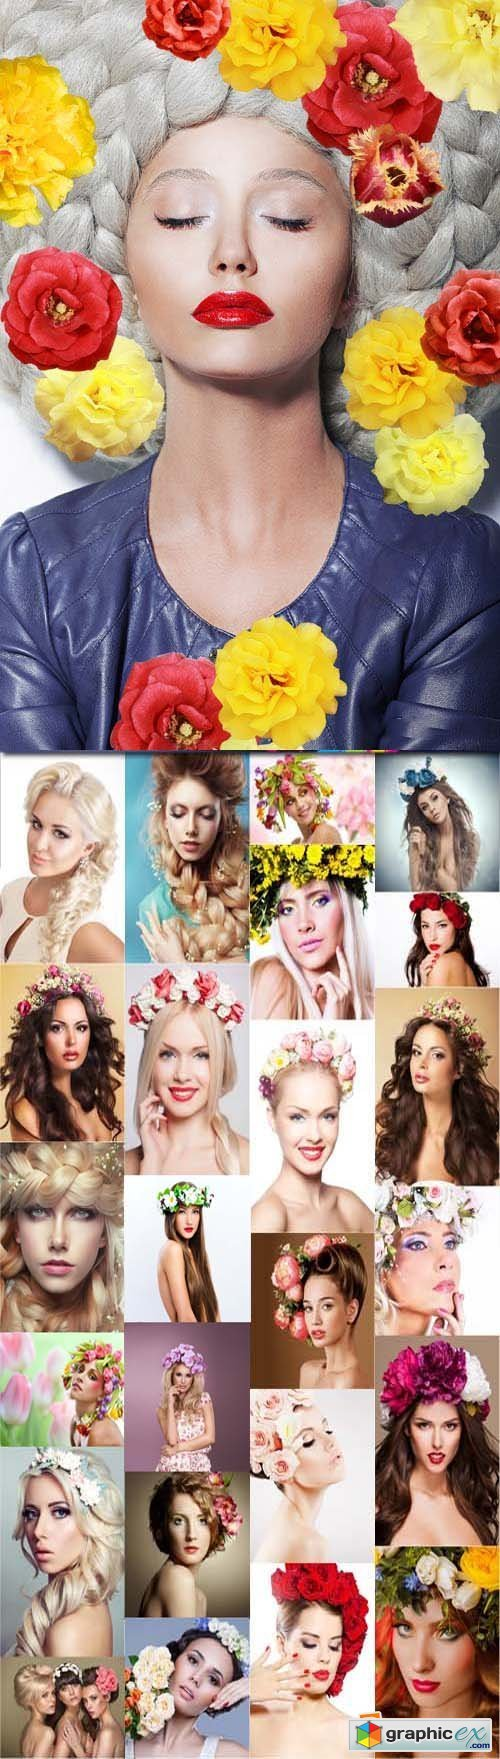 Beautiful women with wreath of flowers in hair, 25xJPGs